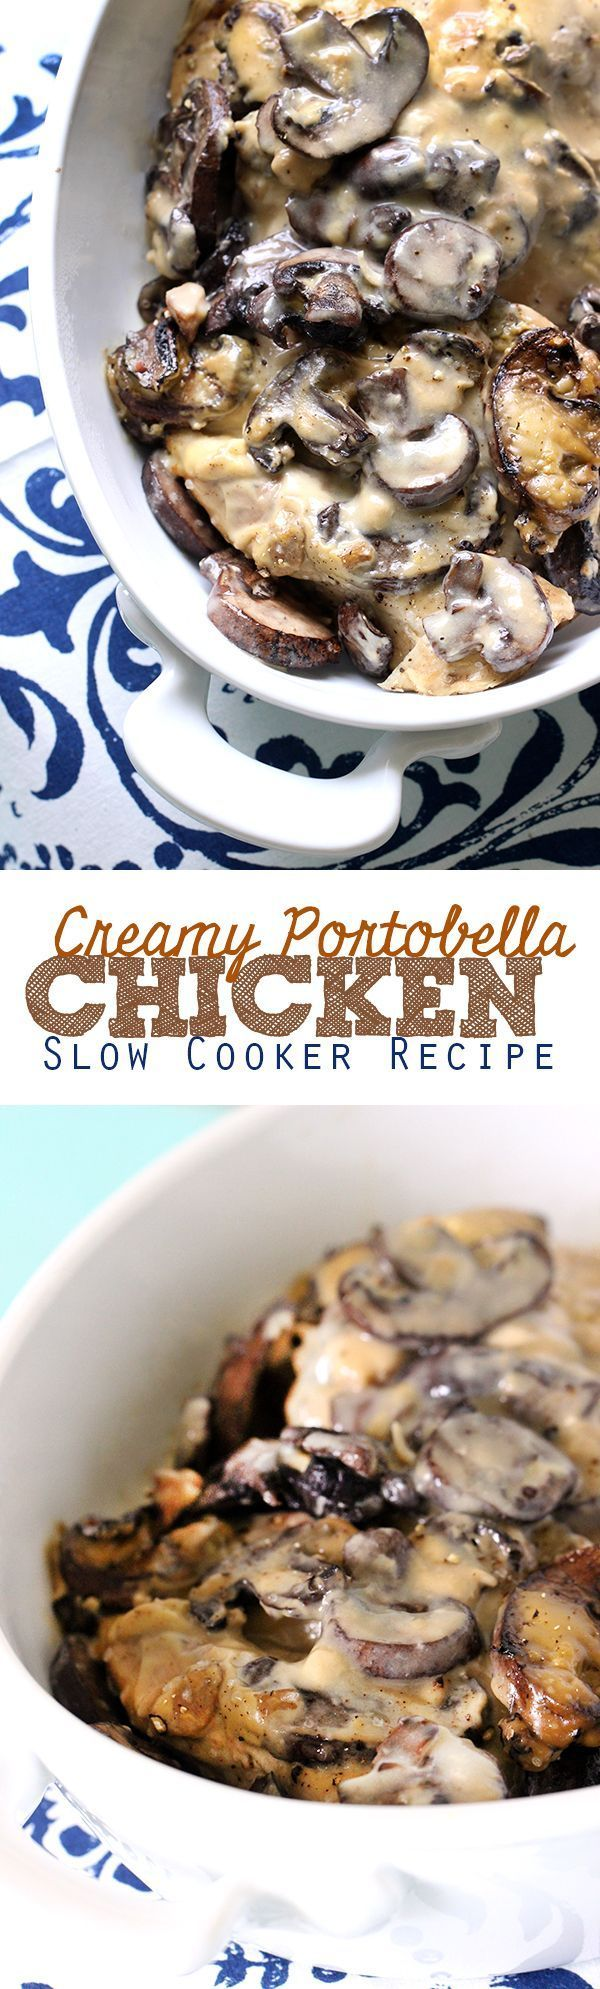 What!? 3 Ingredients to make this slammin' slow cooker chicken. #slowcooker #crockpot